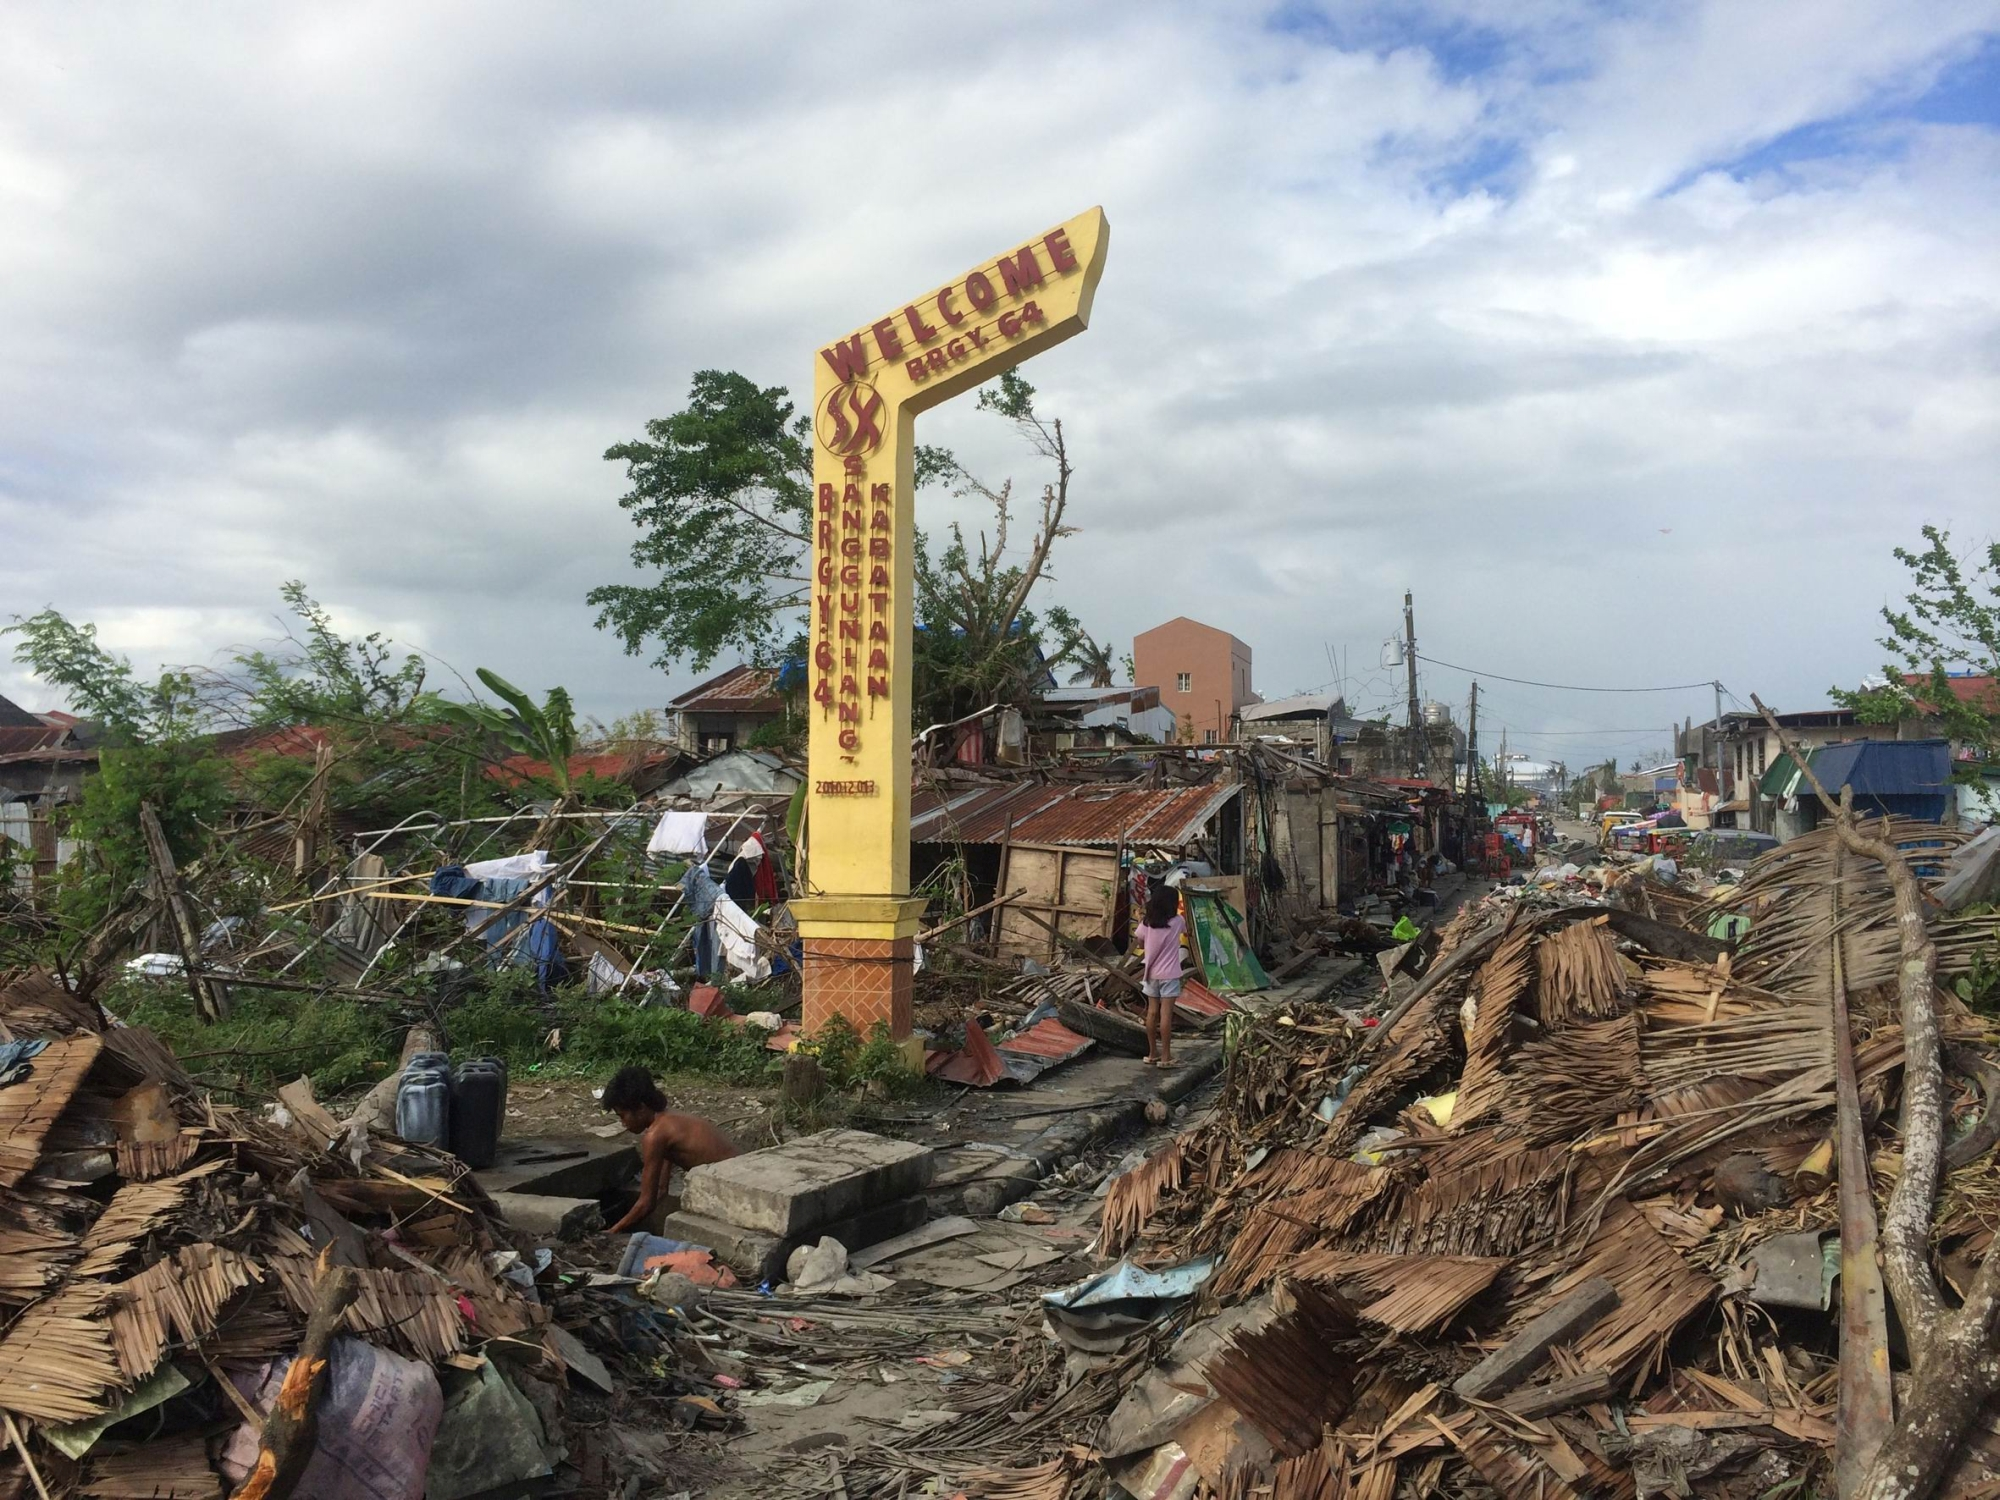 Bruce Wicksteed and the medical team found the situation in the Philippines very confronting after the typhoon struck.